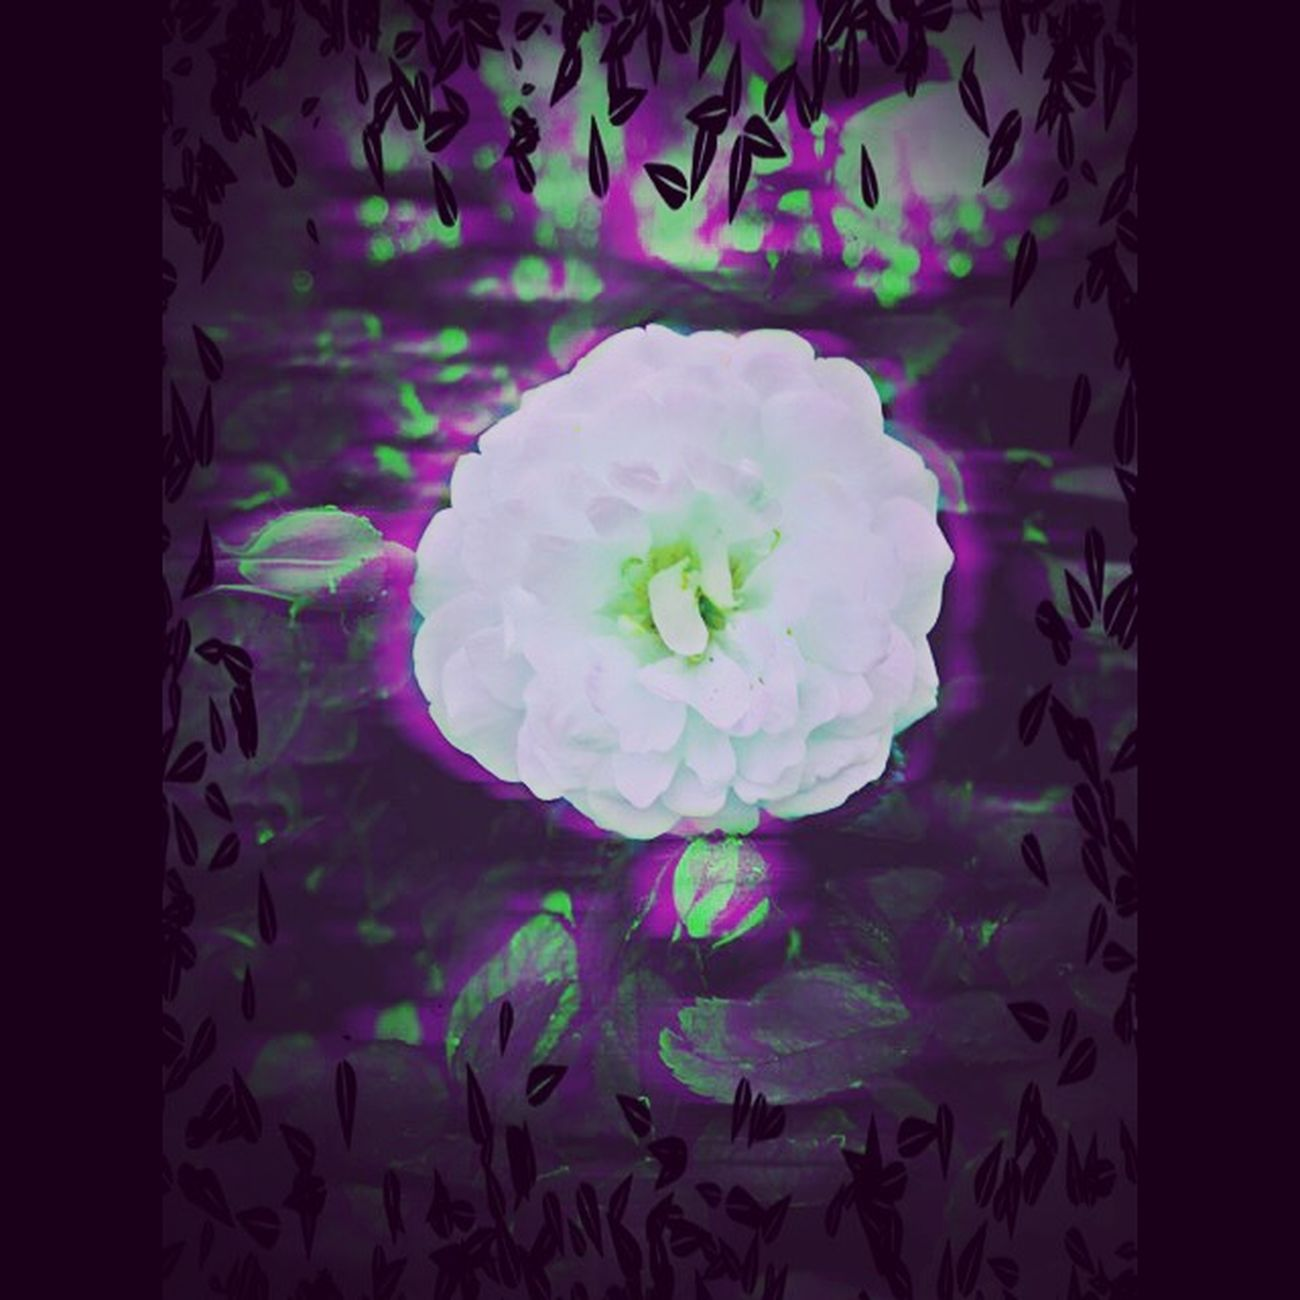 Lost in Wonderland Iphone 6 IPhoneography Iphoneedit Iphoneediting Floral Fantasy Roses Garden Nature Purple And Green